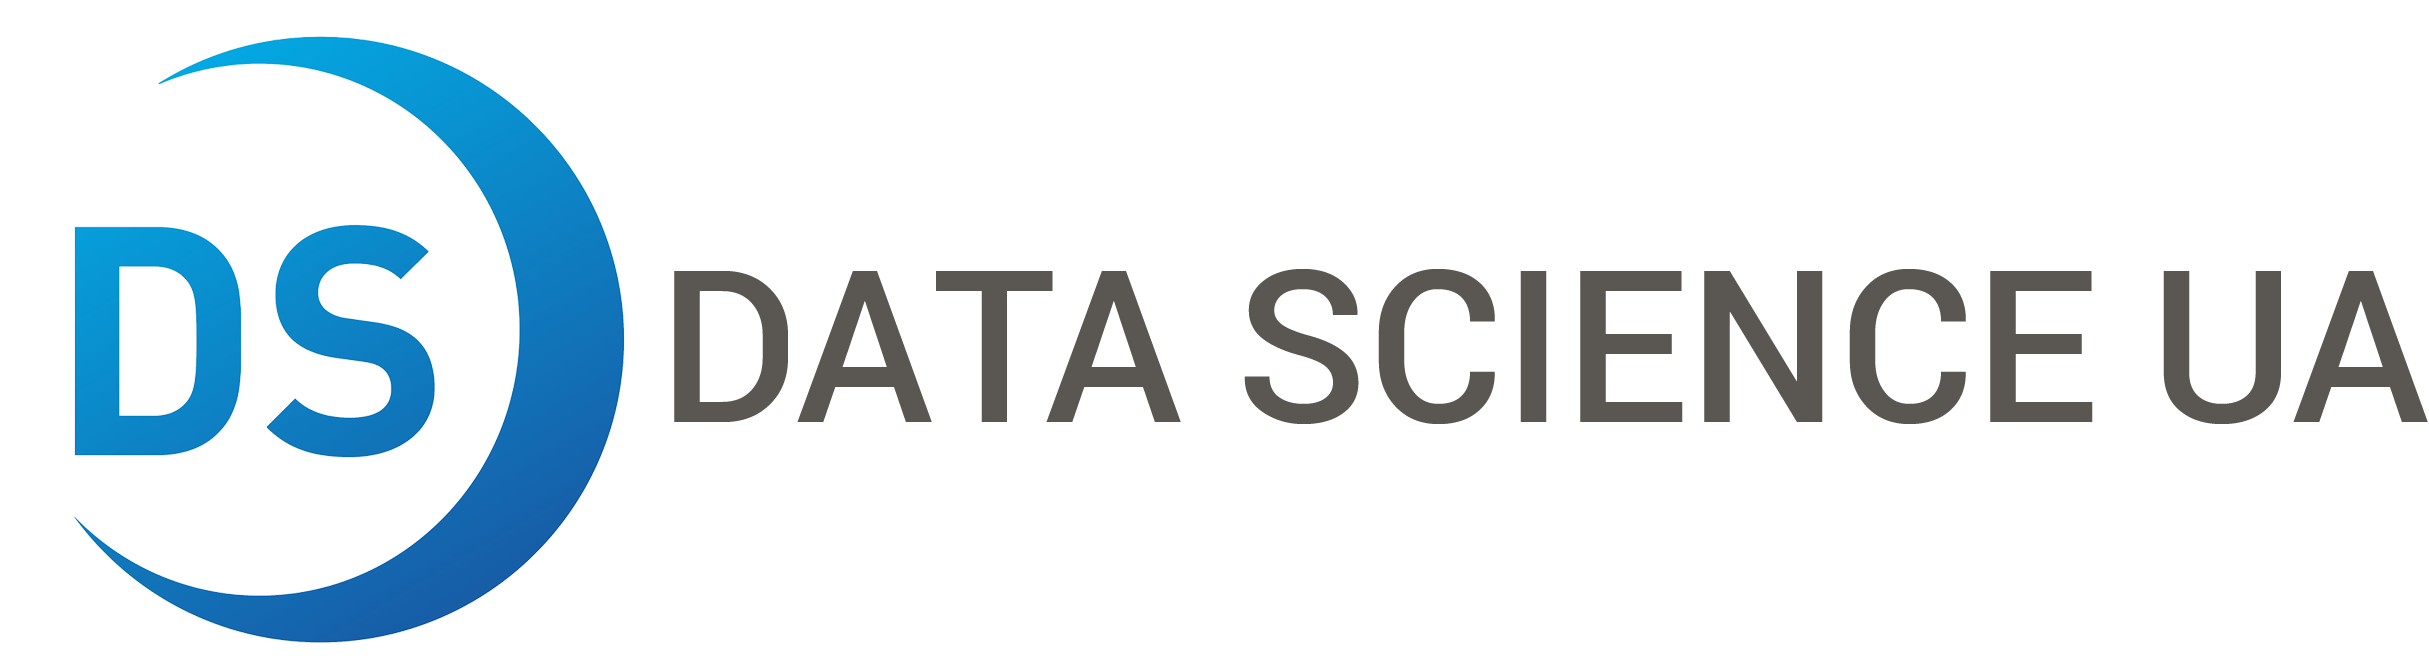 logo data science